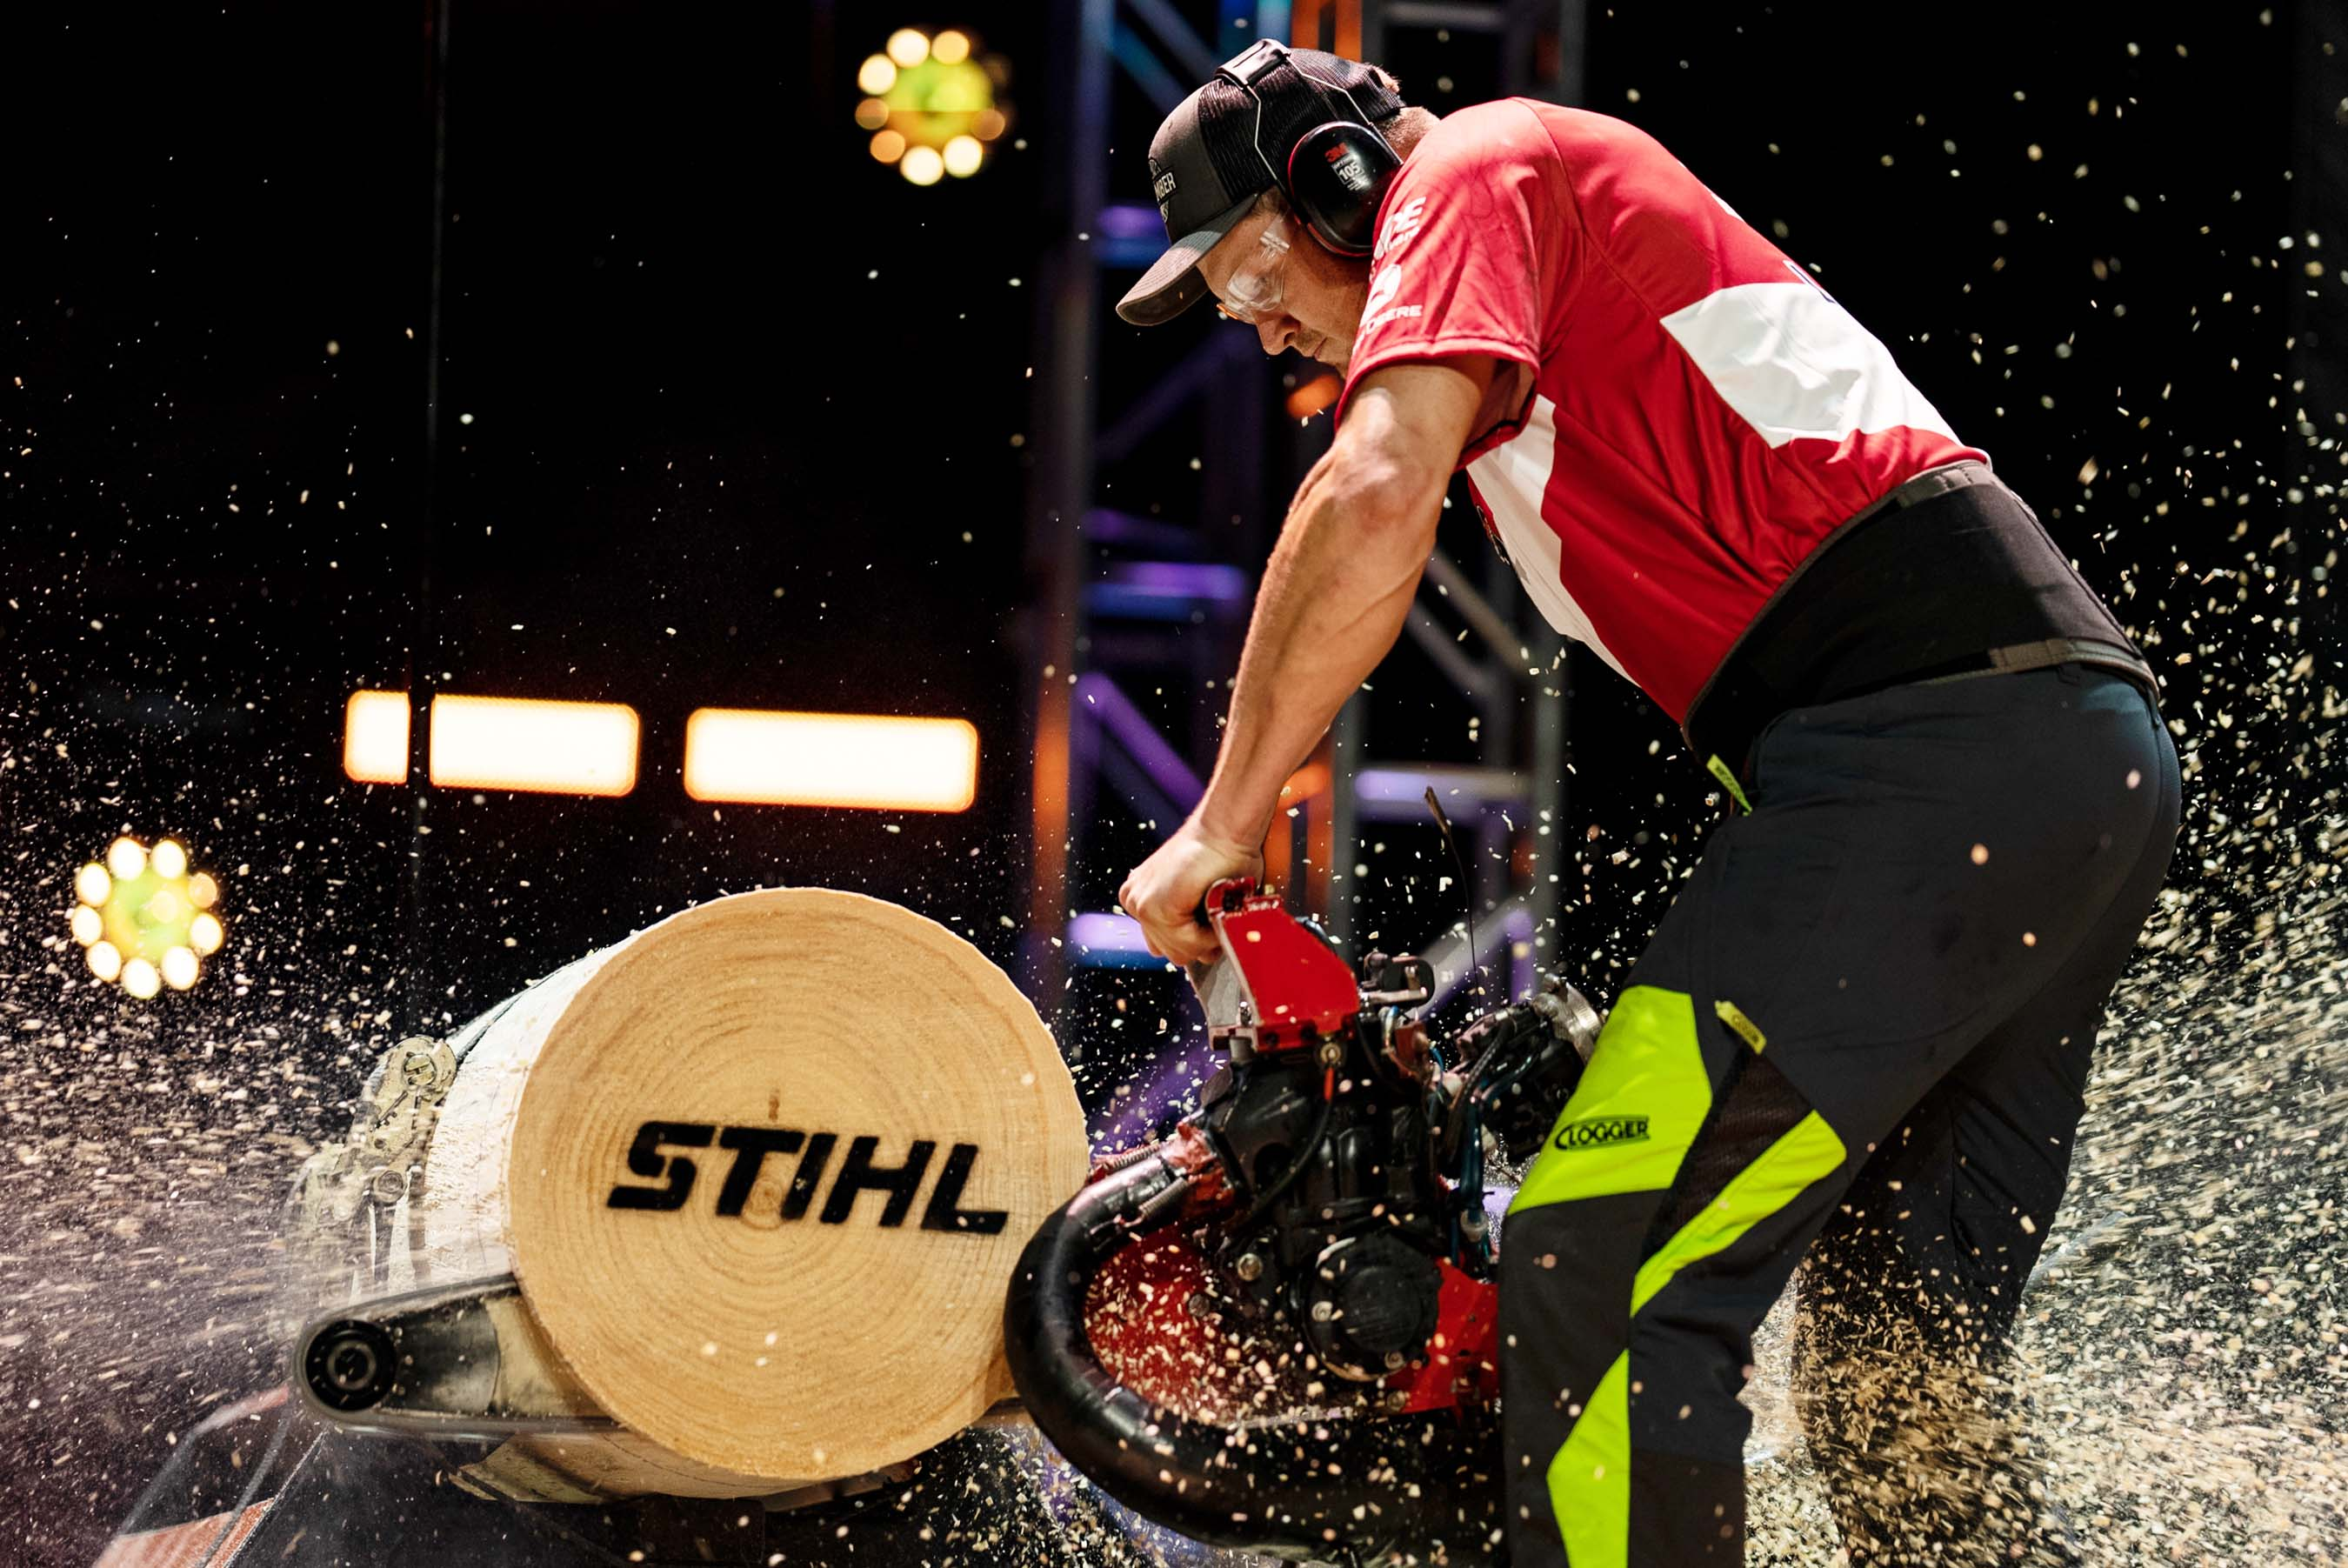 Jason Lentz goes for a U.S. record in the Hot Saw. In this discipline, the competitor uses a customized chainsaw with a modified engine, usually taken from a personal watercraft or snowmobile.